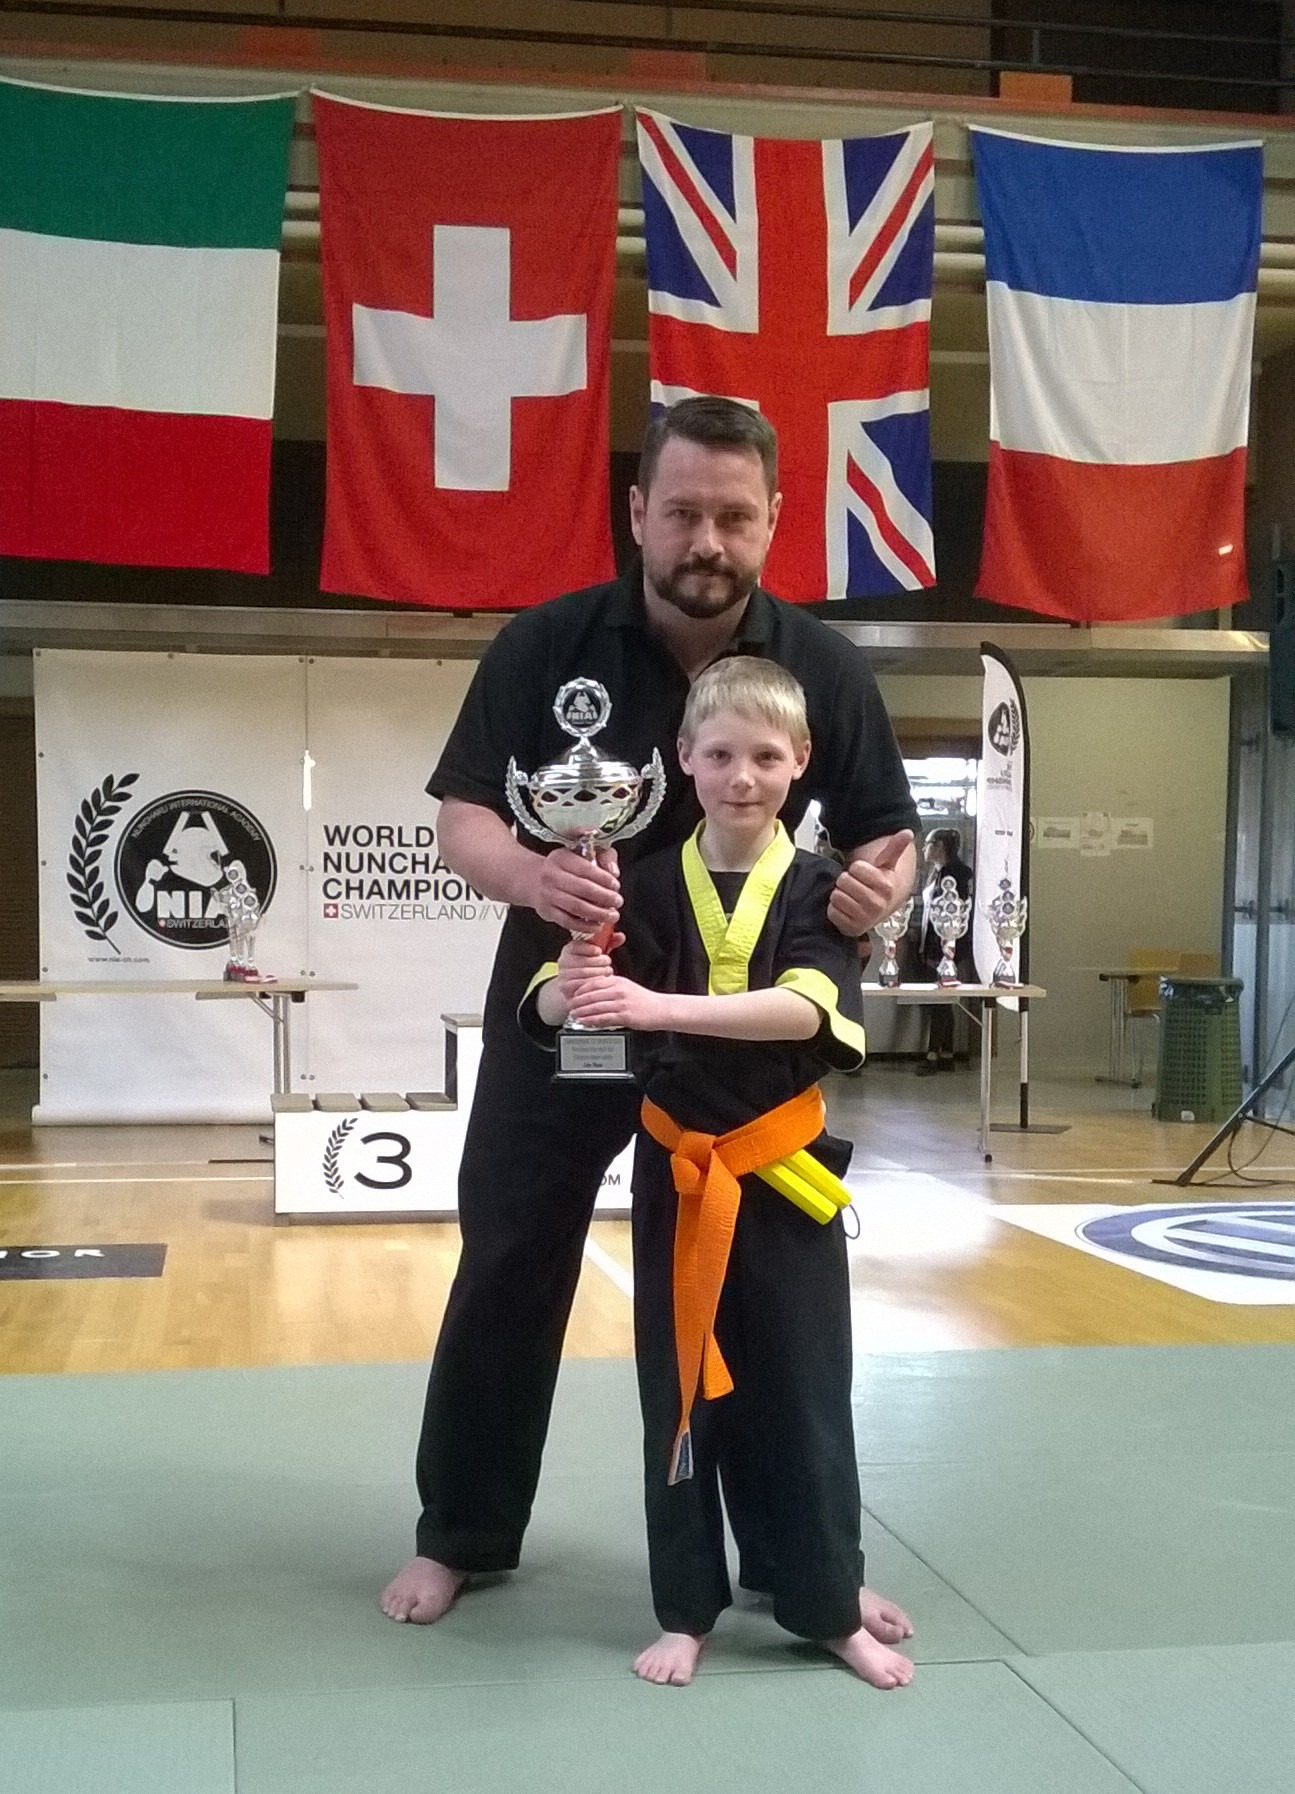 Sport Nunchaku Team GB World Champions 2016